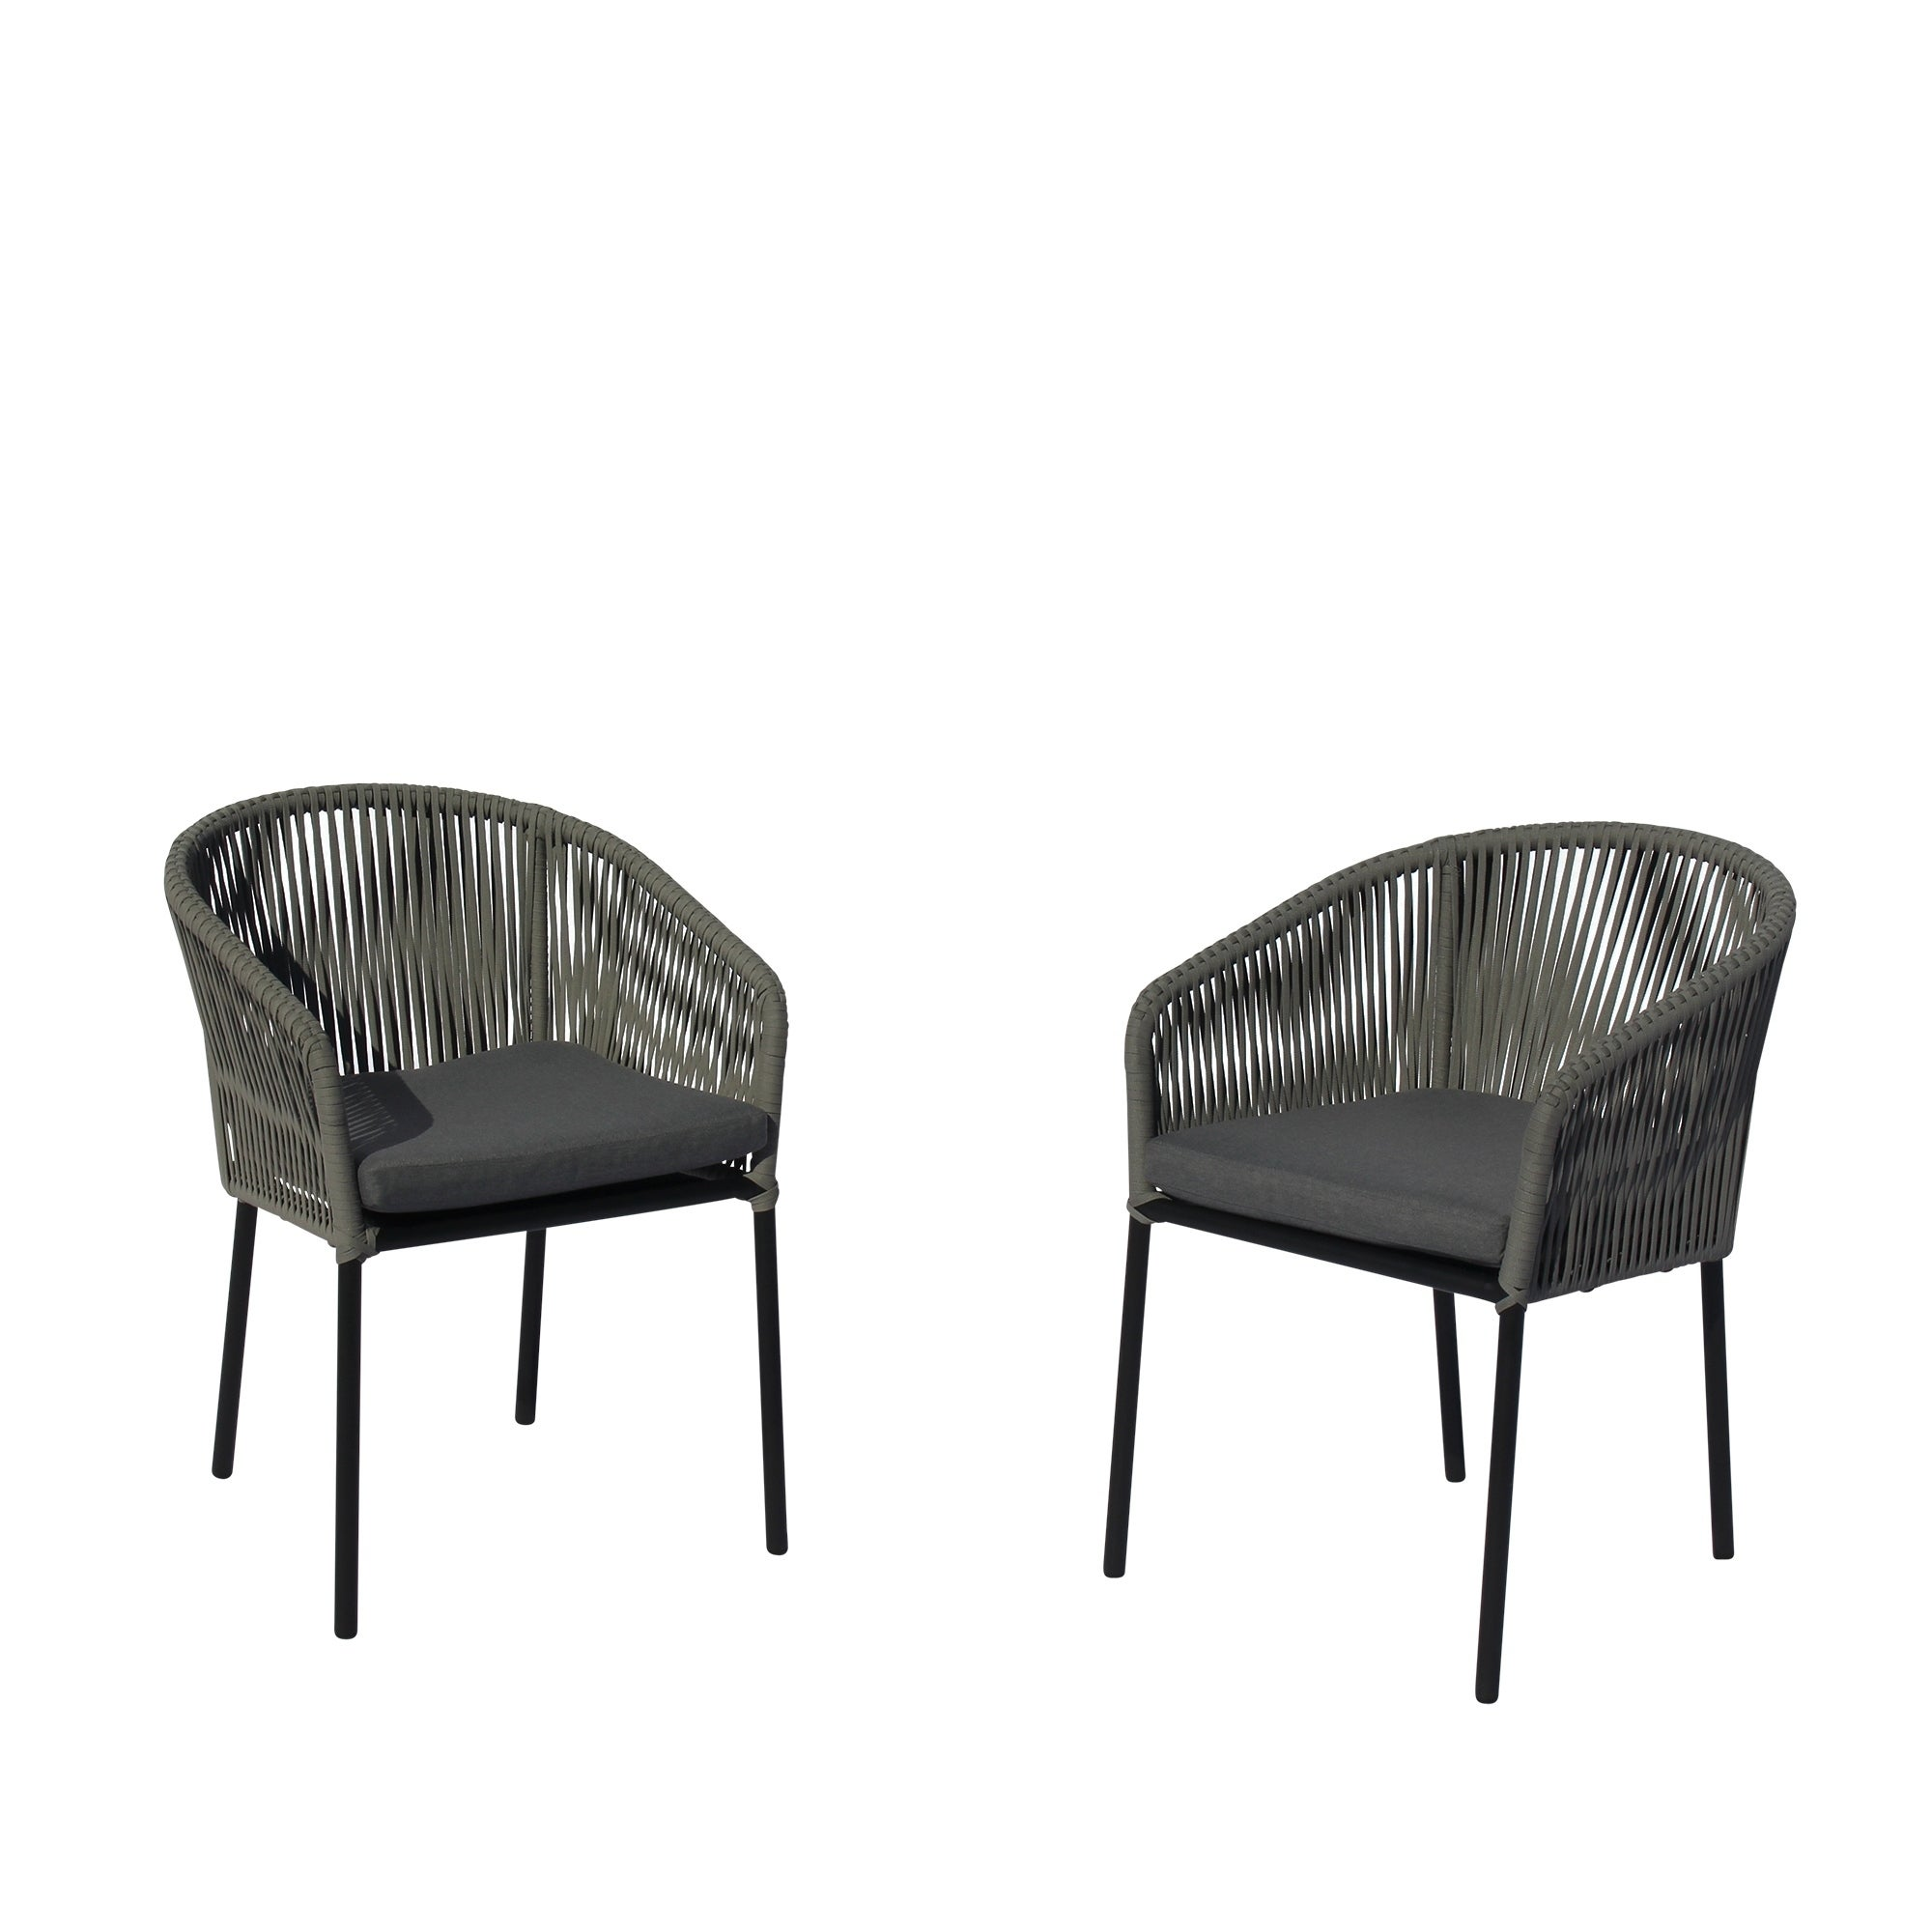 Courtyard Casual Osborne Black Aluminum Outdoor Dining Chairs With Cushions Set Of 2